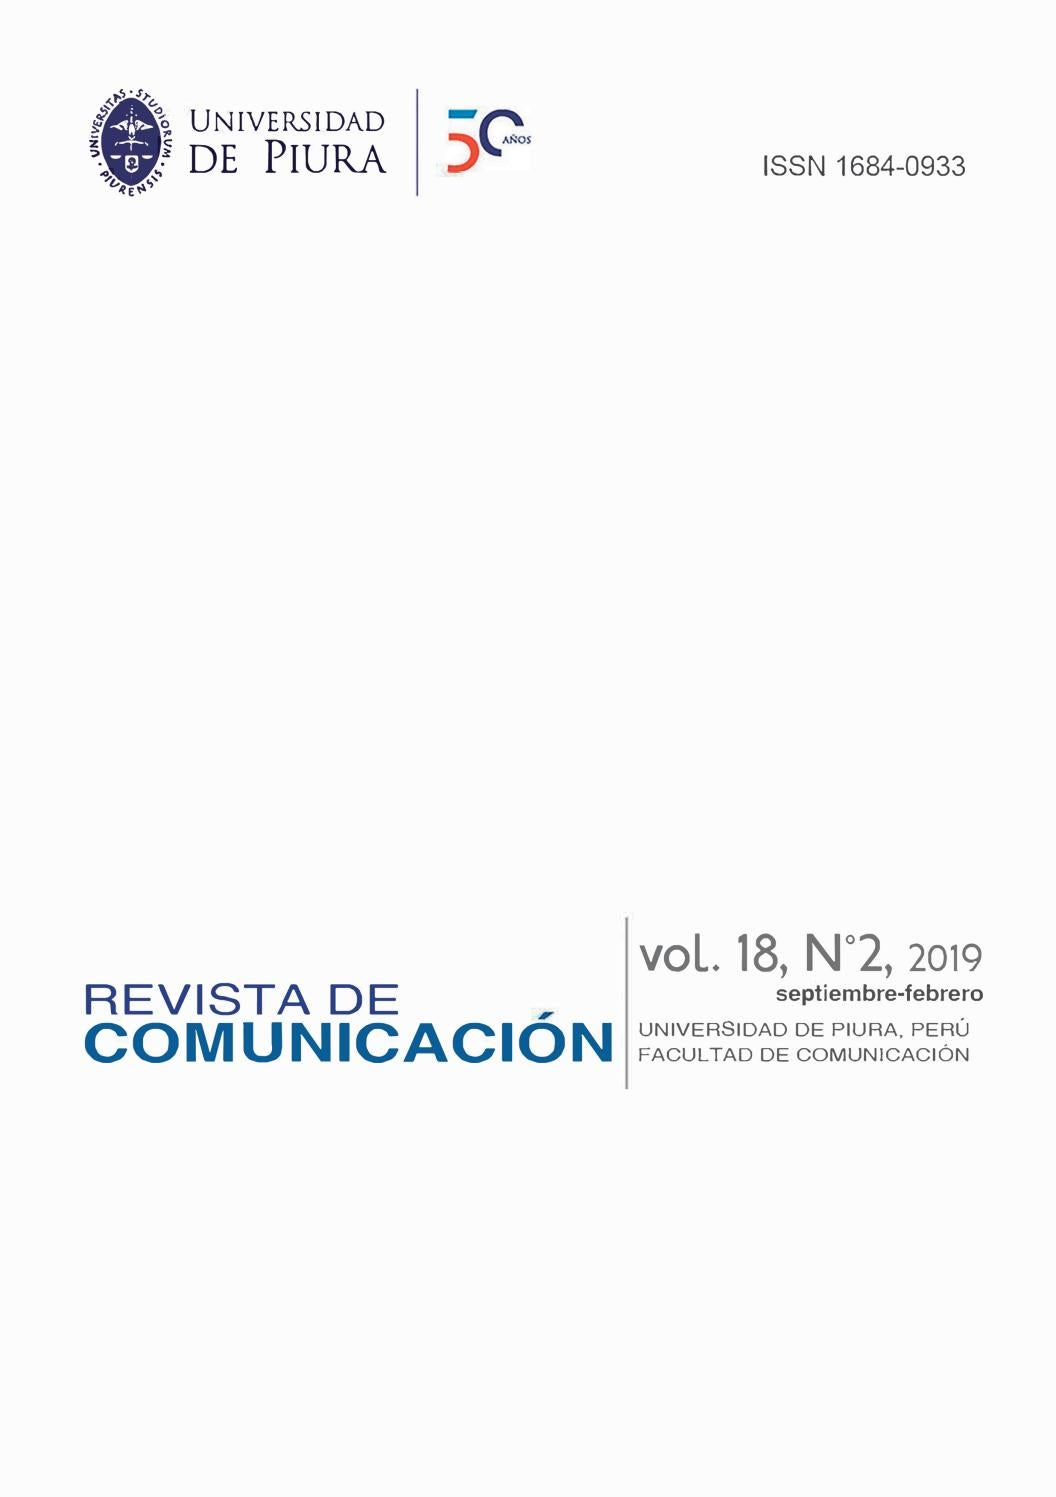 Revista De Comunicación Vol 18 N2 2019 By Revista De